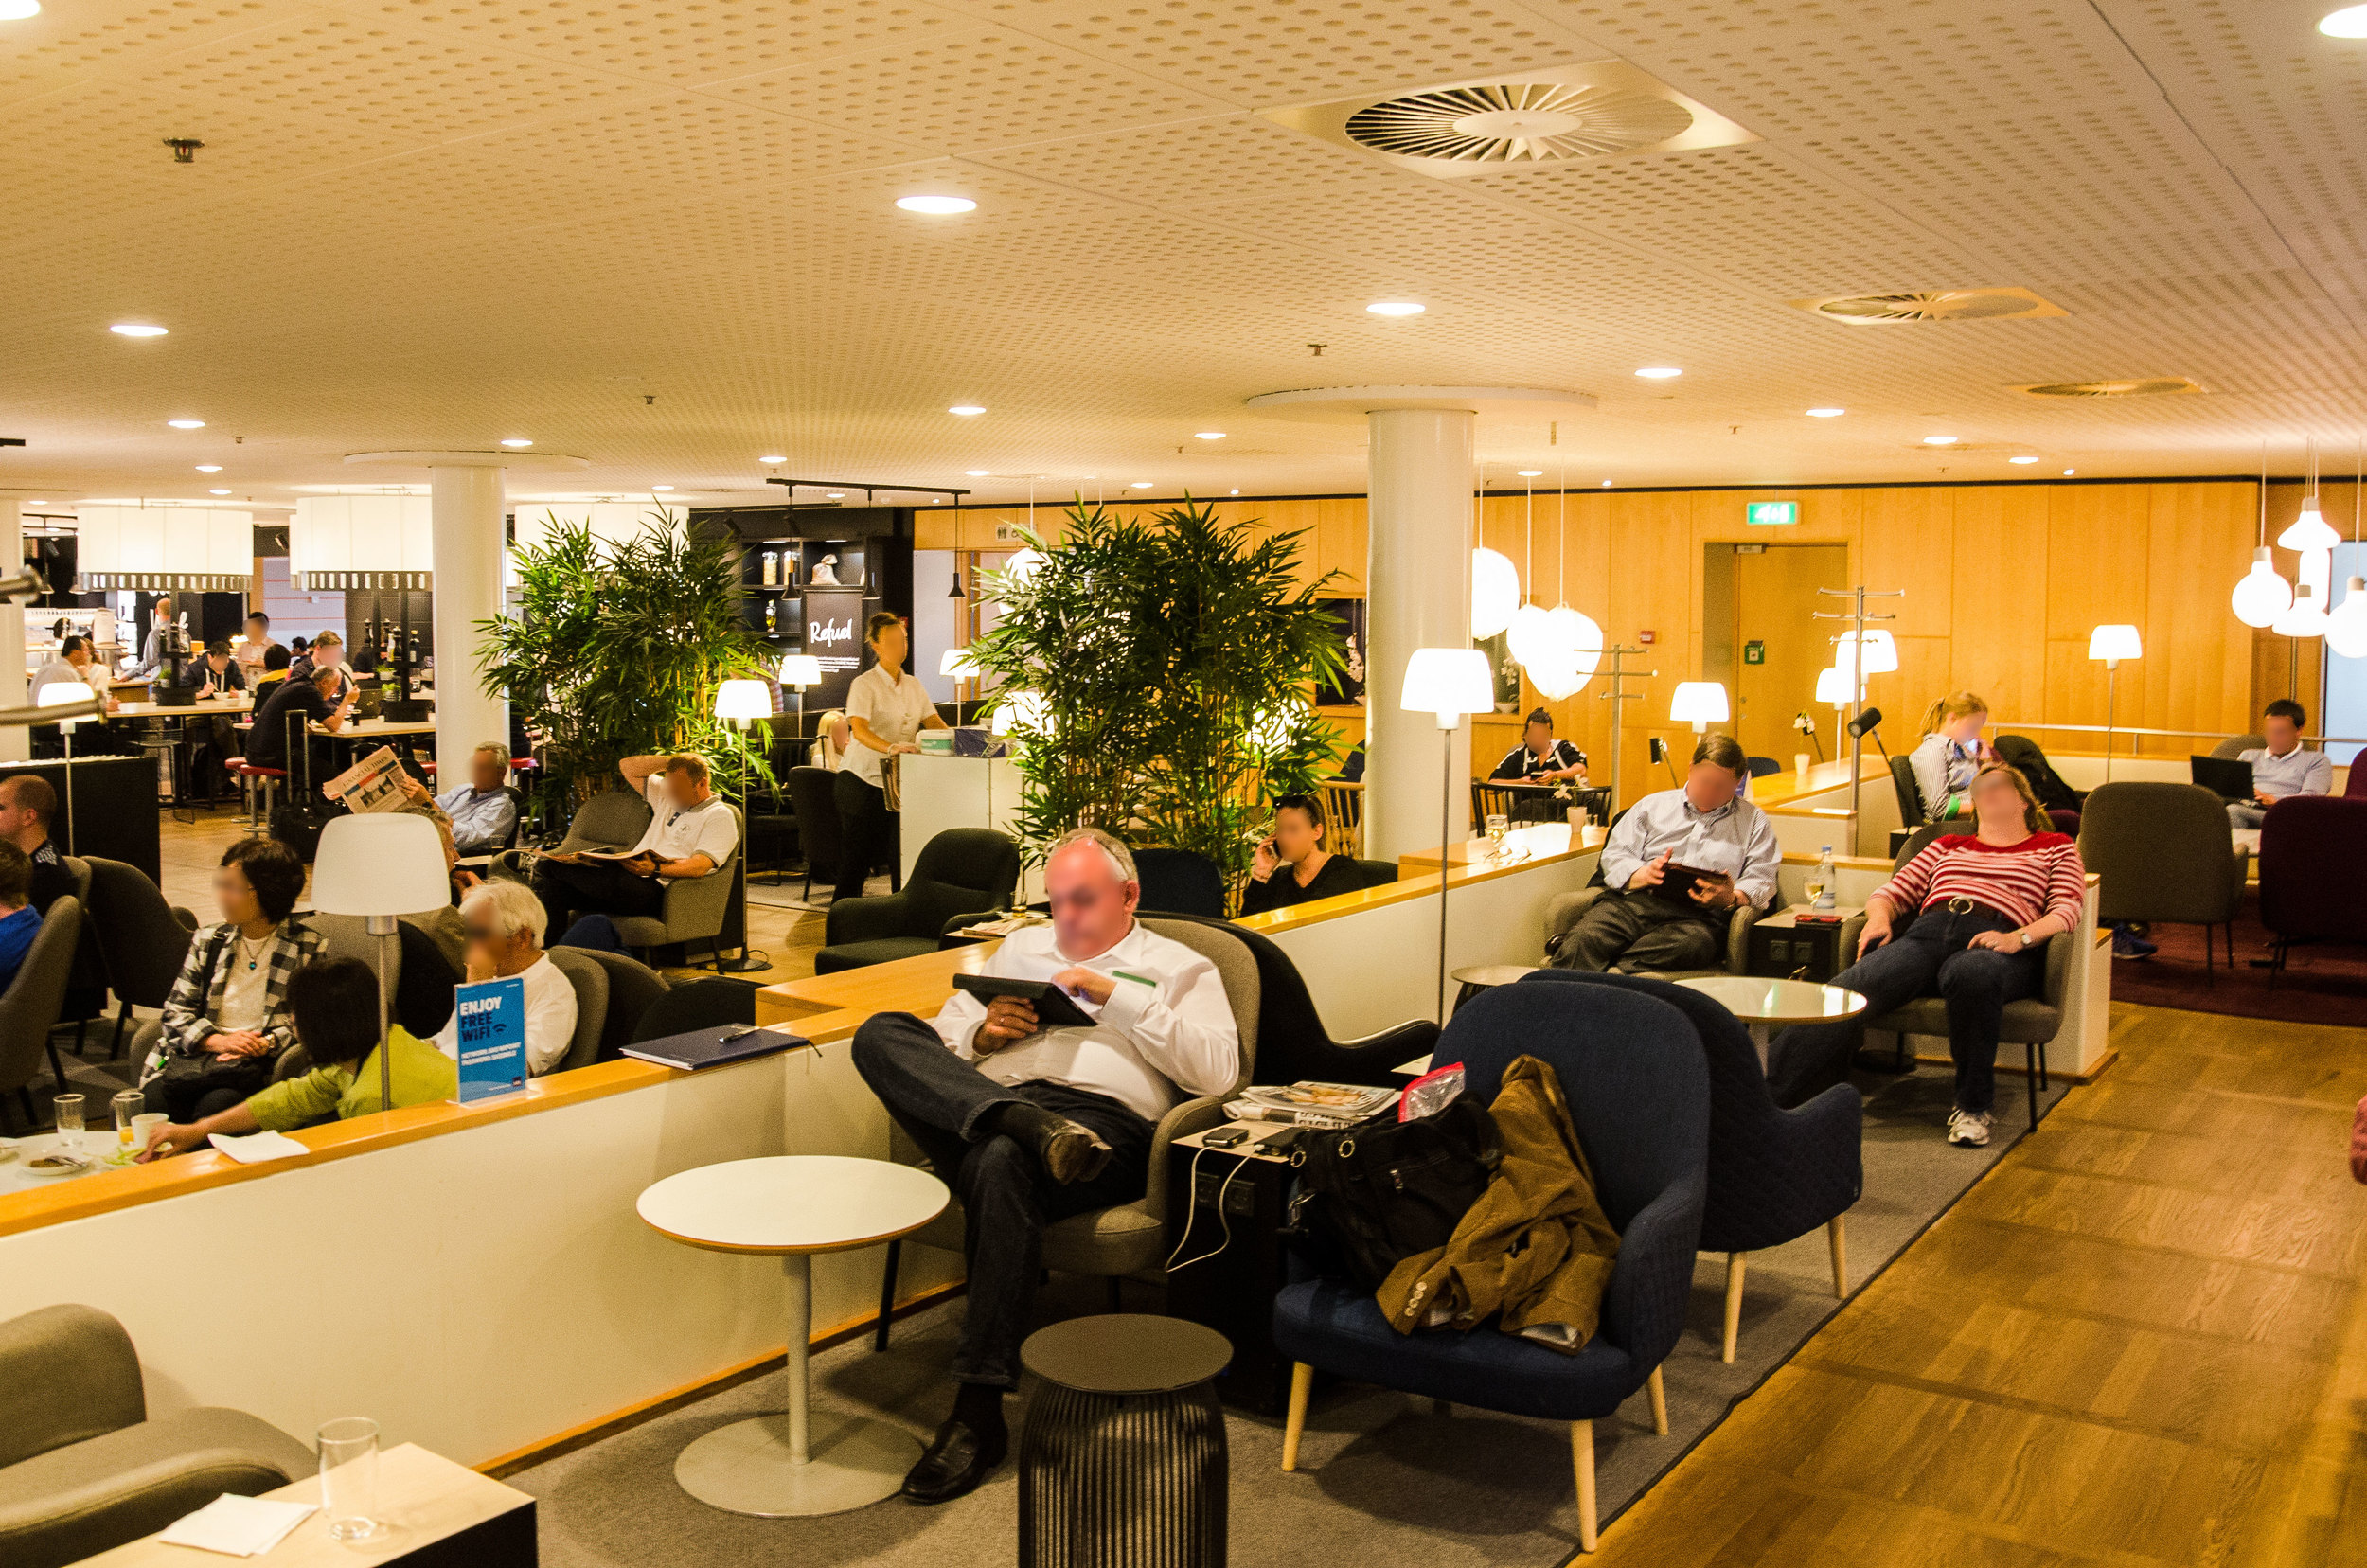 The lounge's main seating area. Though there were many people there were always enough seats still available!